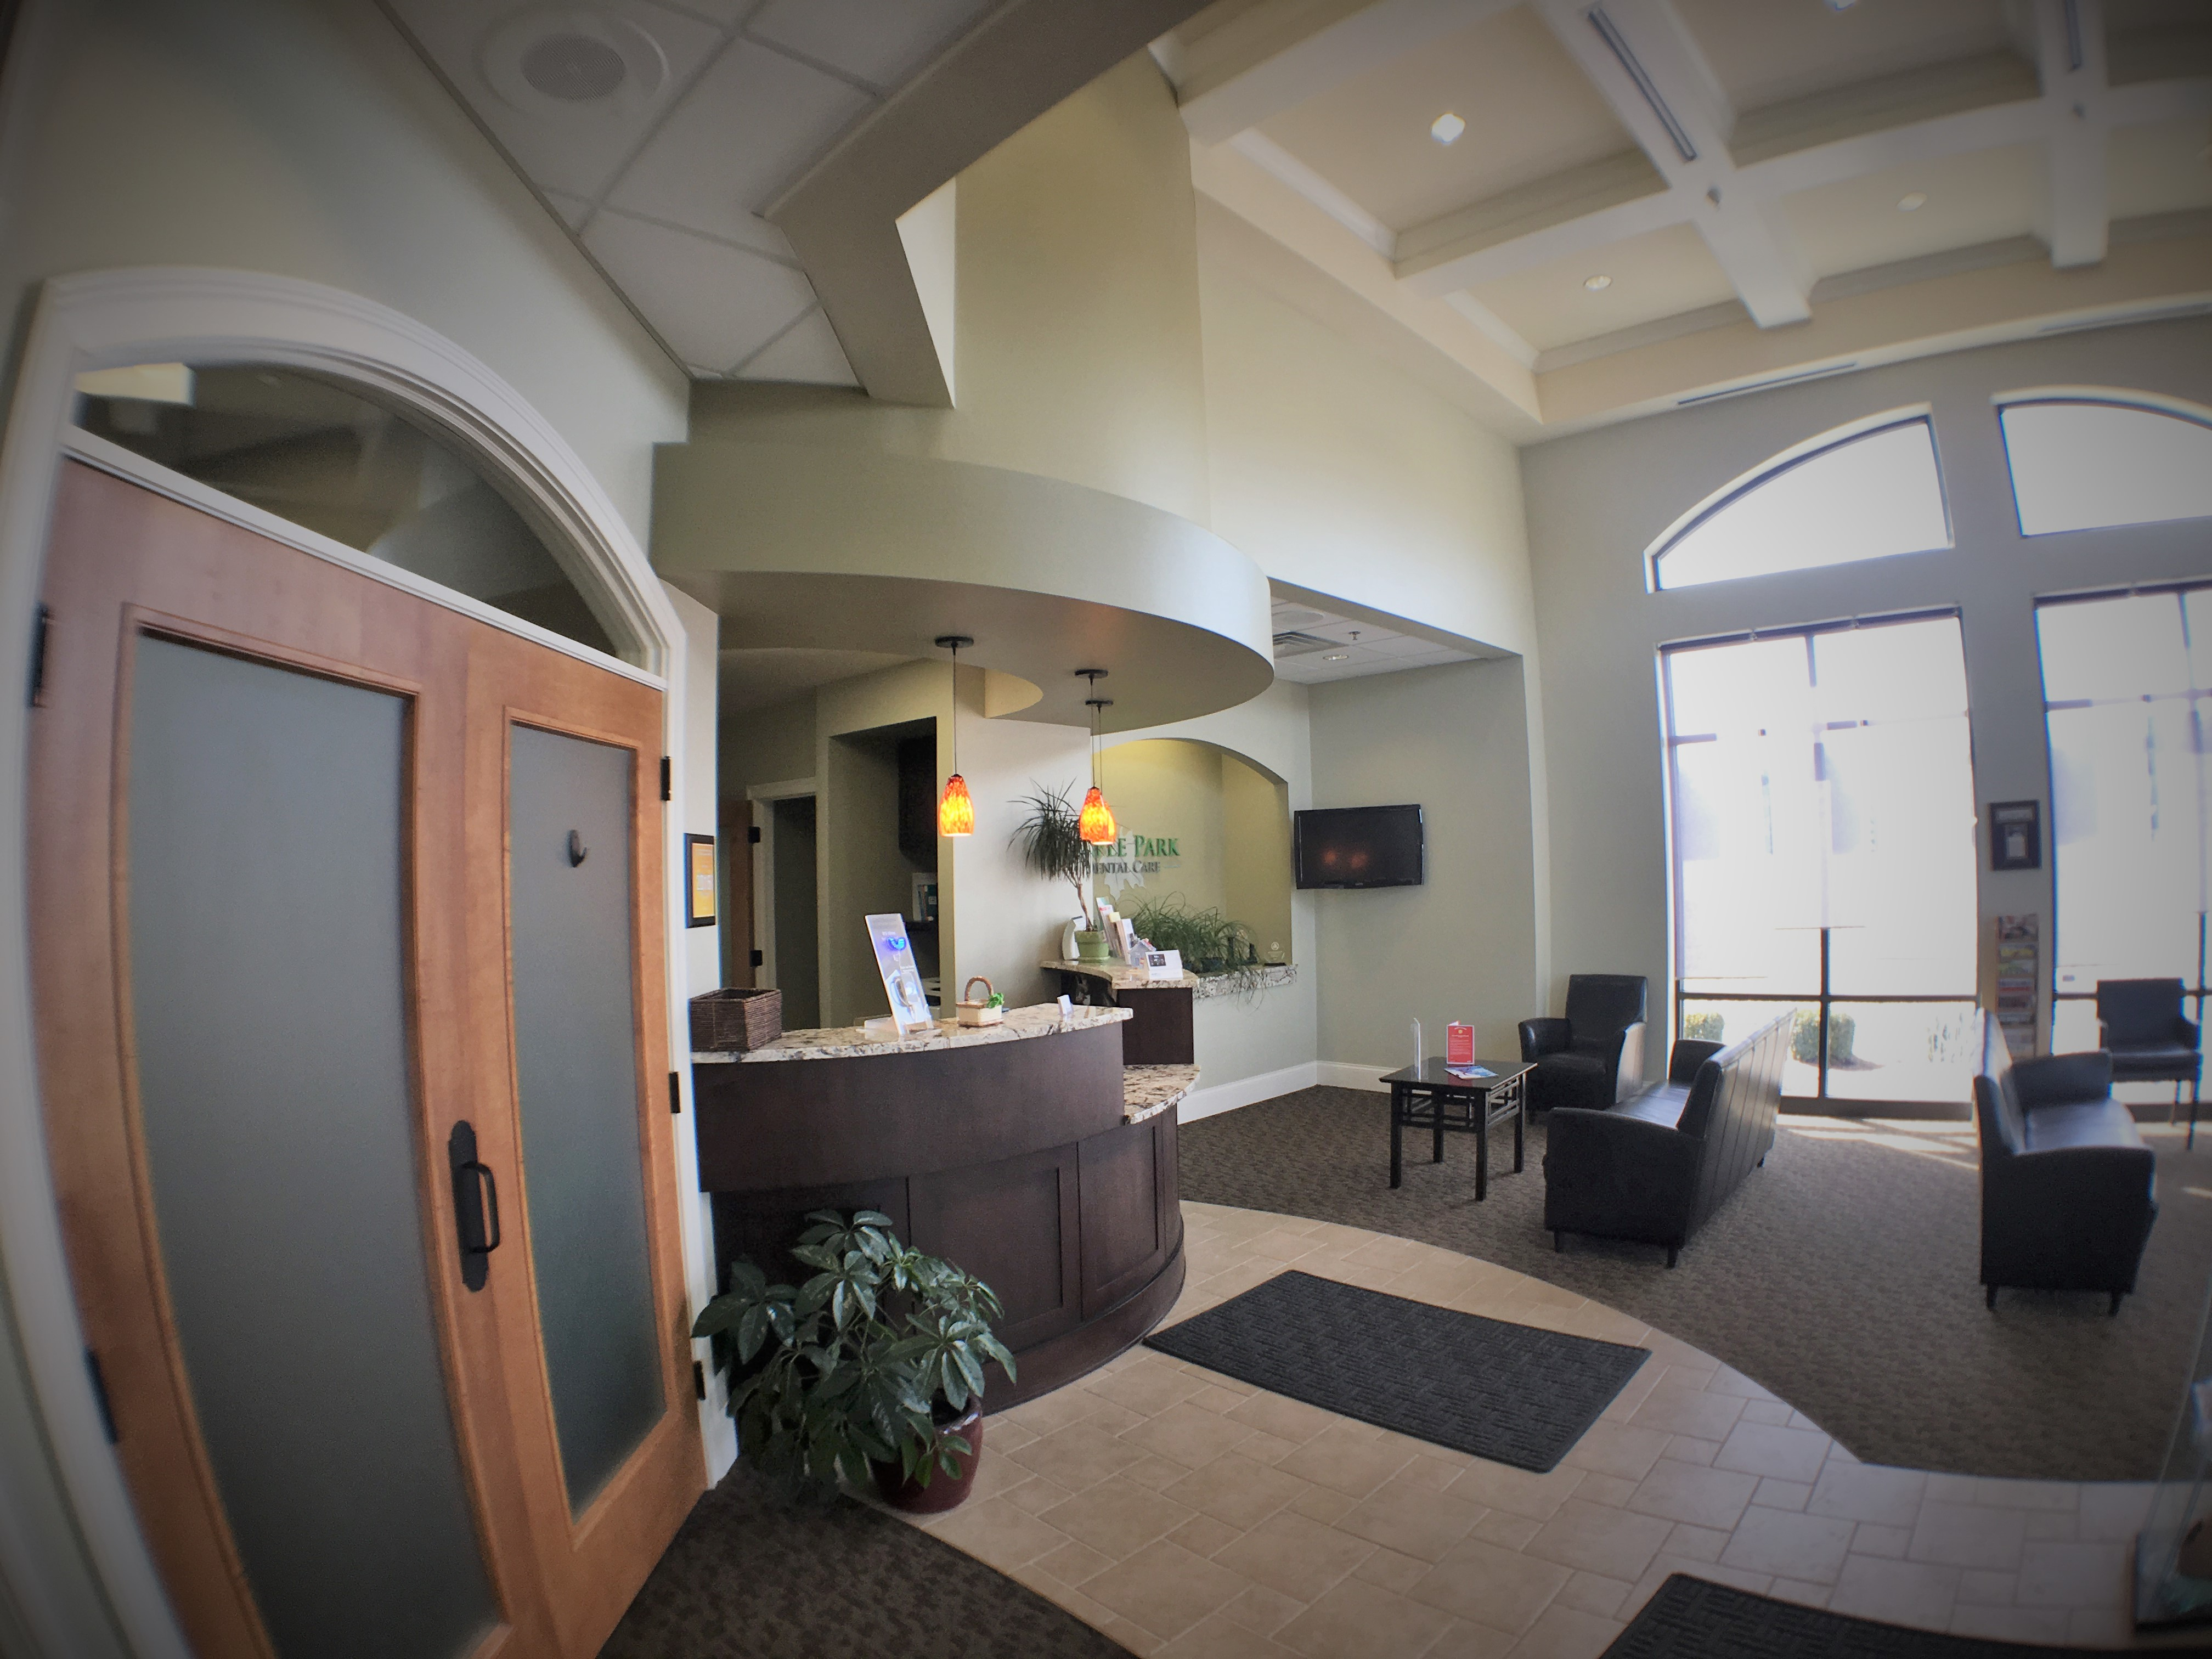 Maple Park Dental Care of Naperville image 4